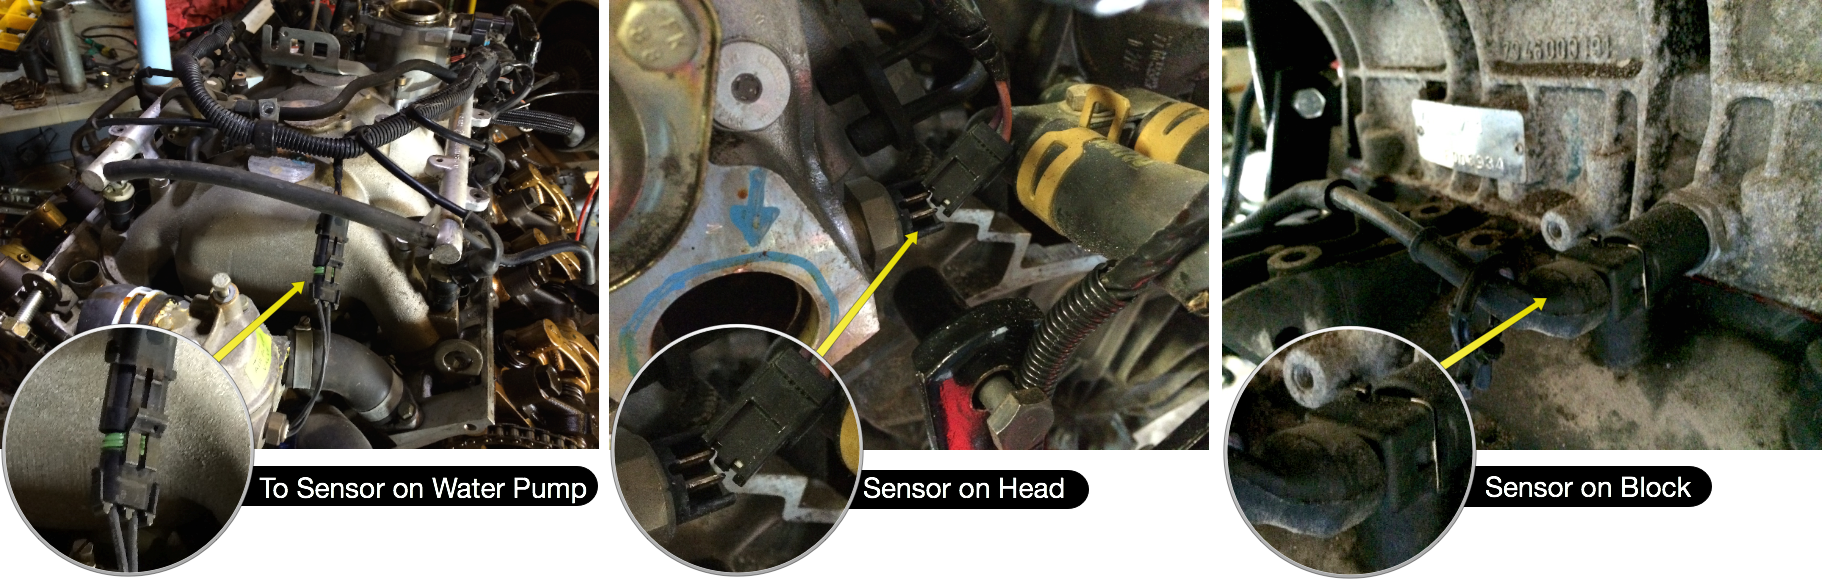 Senors that need to be unplugged before the wiring rails can be removed.